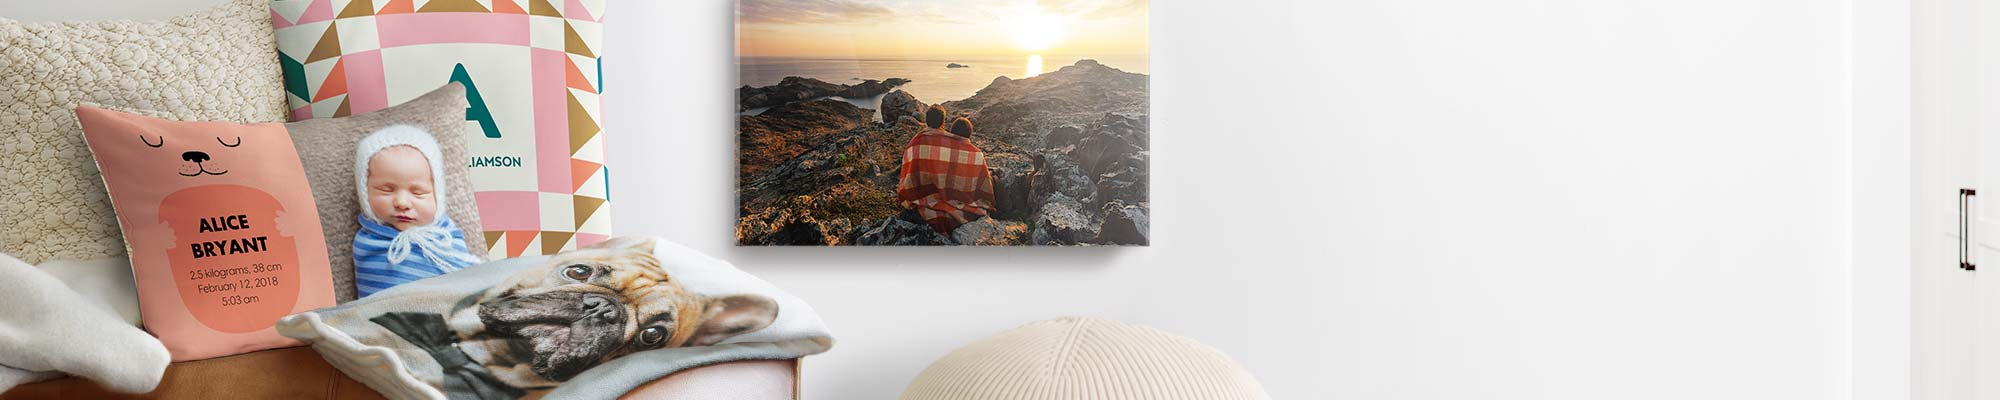 Home Décor & Wall Art Fill your home with a cosy collection of your favourite moments, places, and faces.